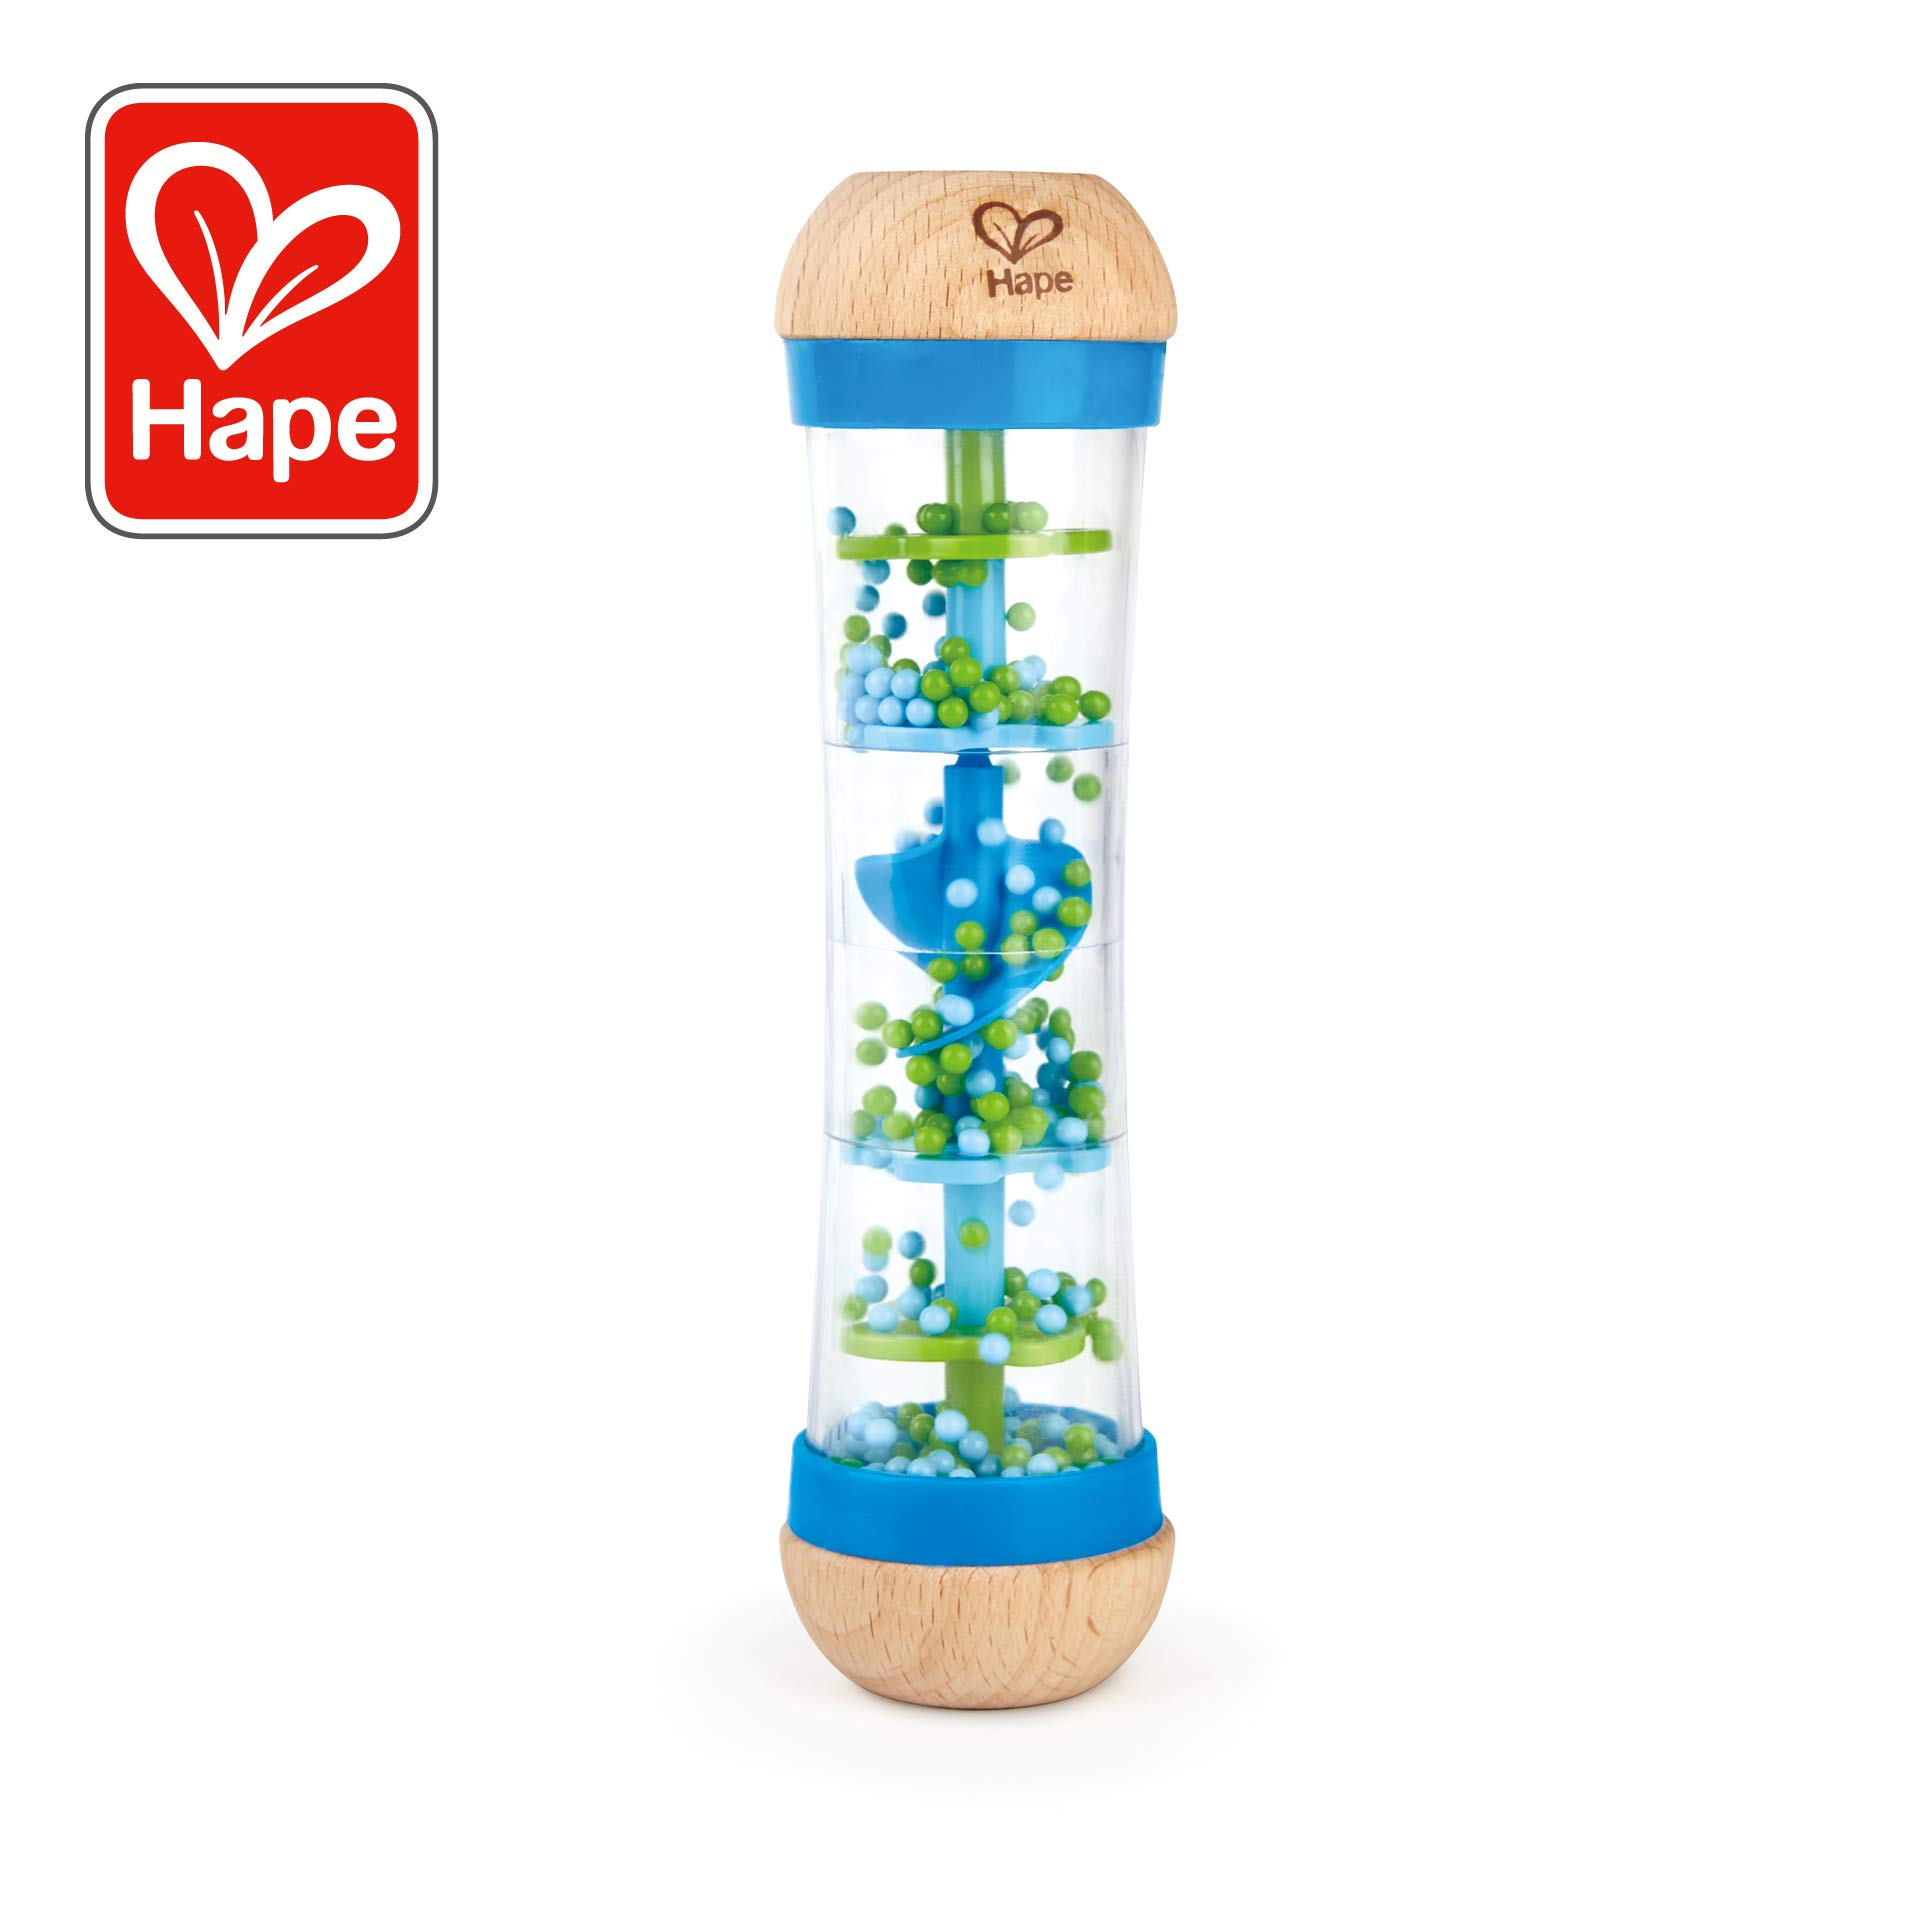 Hape Beaded Raindrops | Mini Wooden Musical Shake & Rattle Rainmaker Toy, Blue by Hape